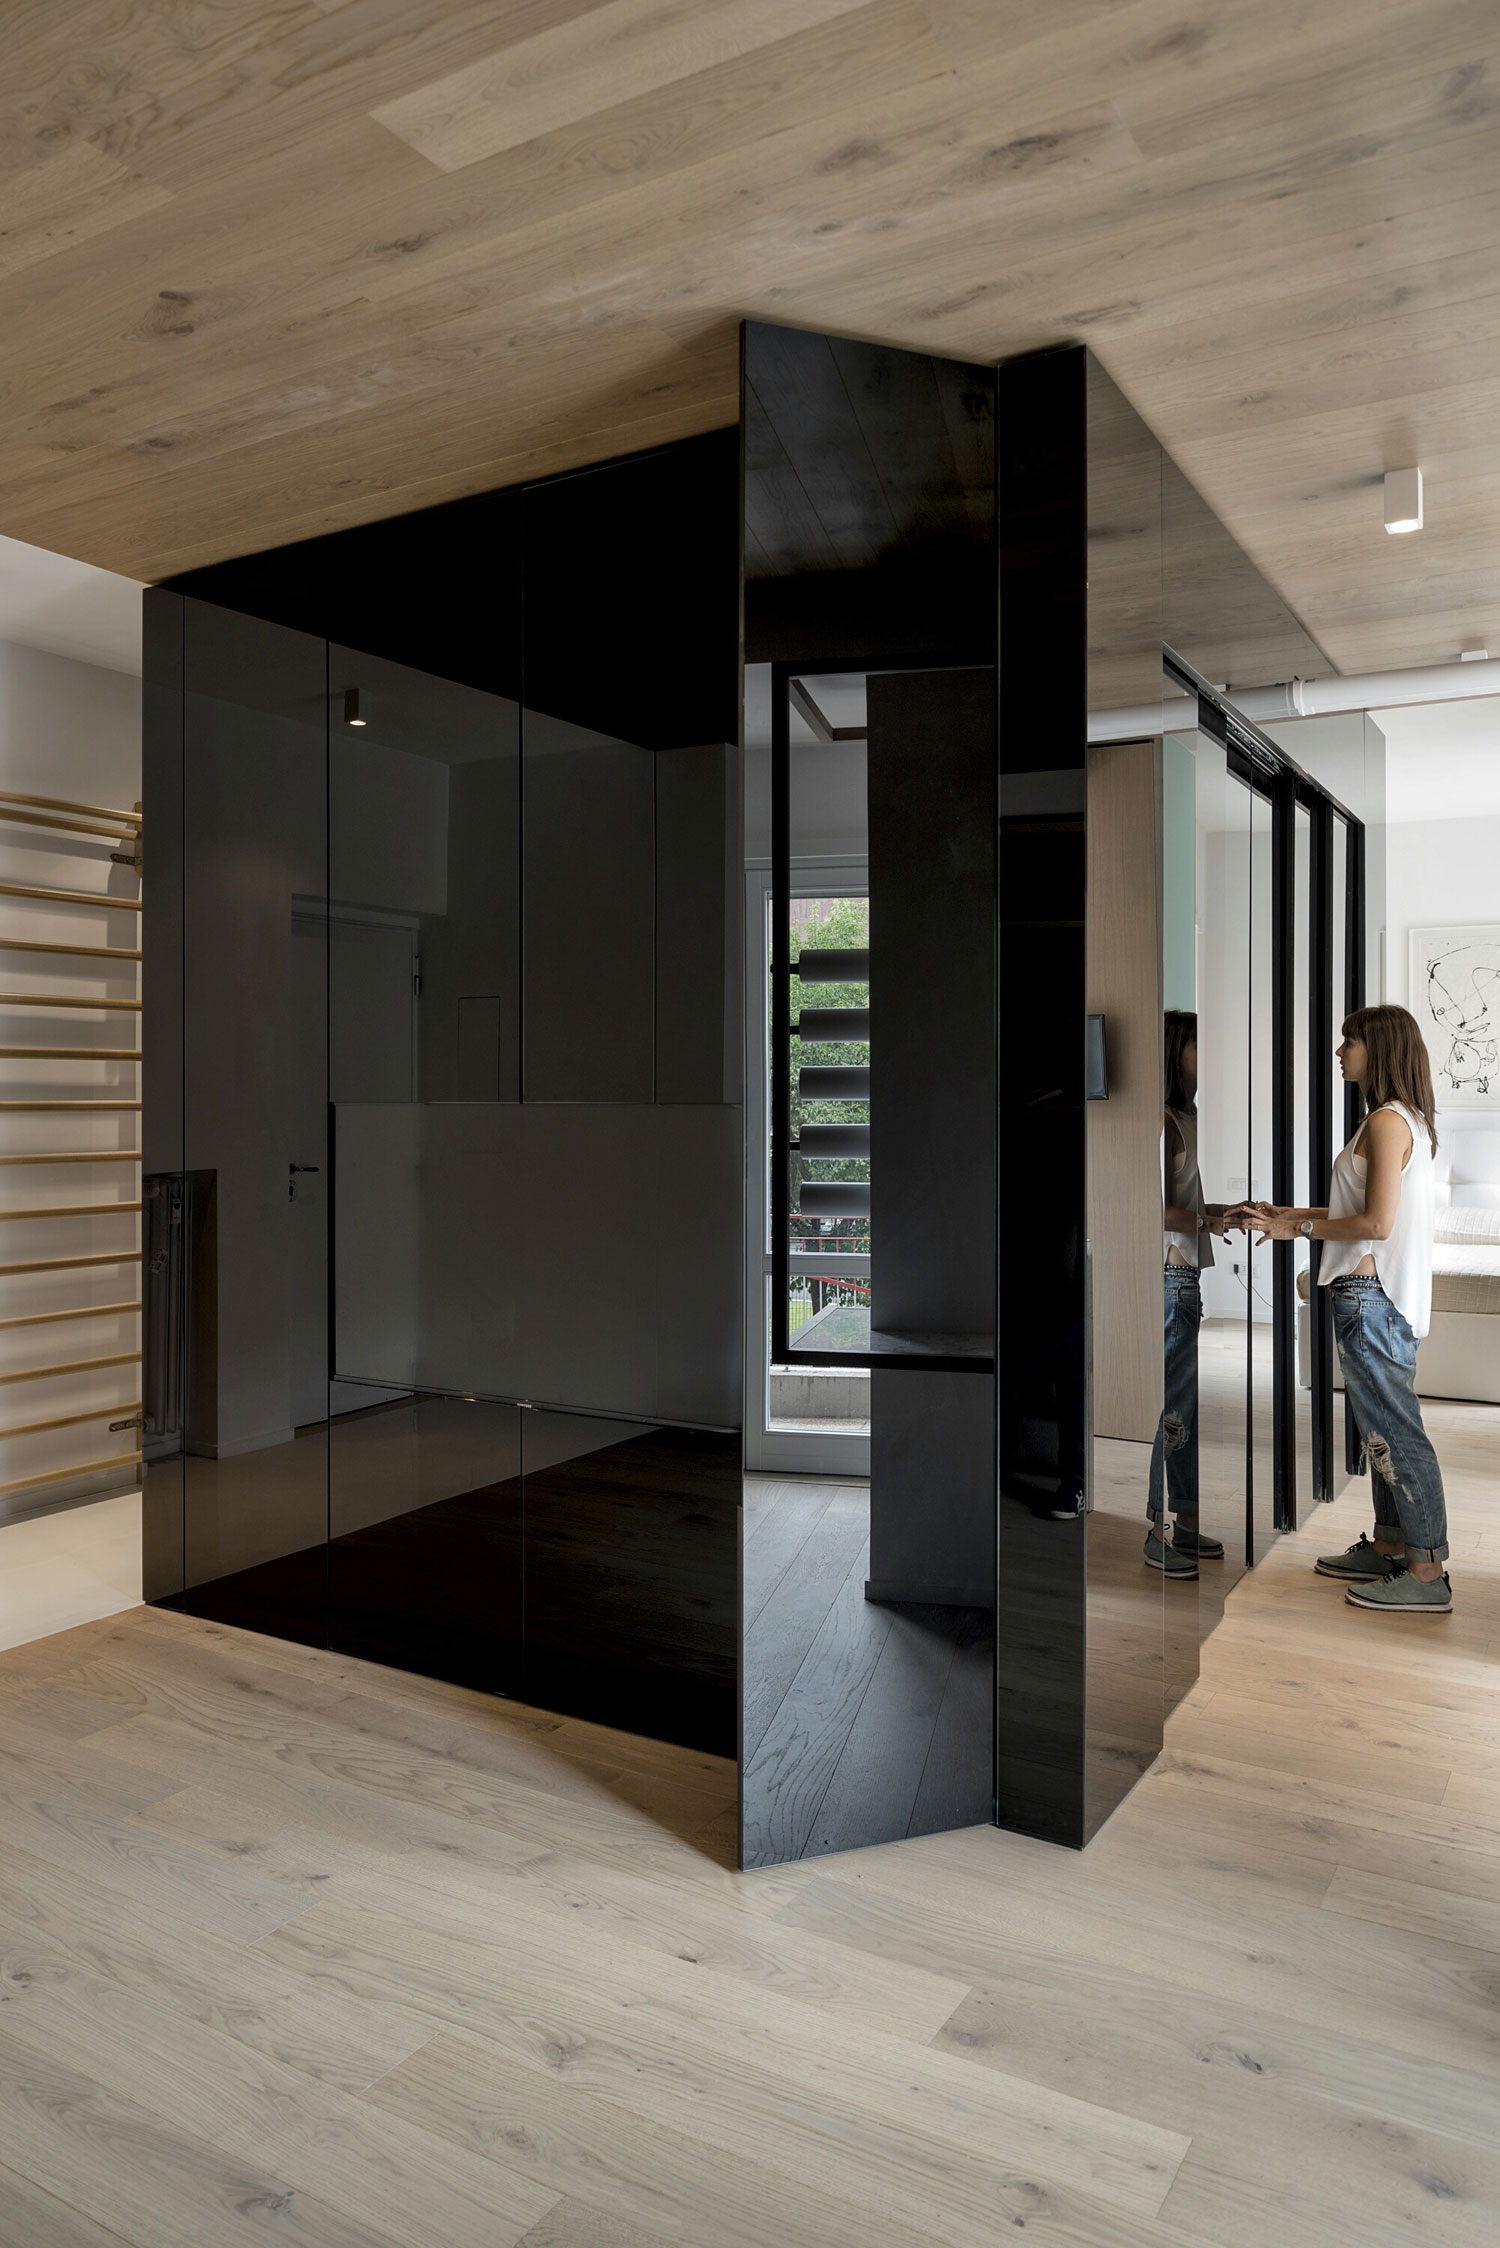 The Cube Apartment in Rome by Noses Architects-01